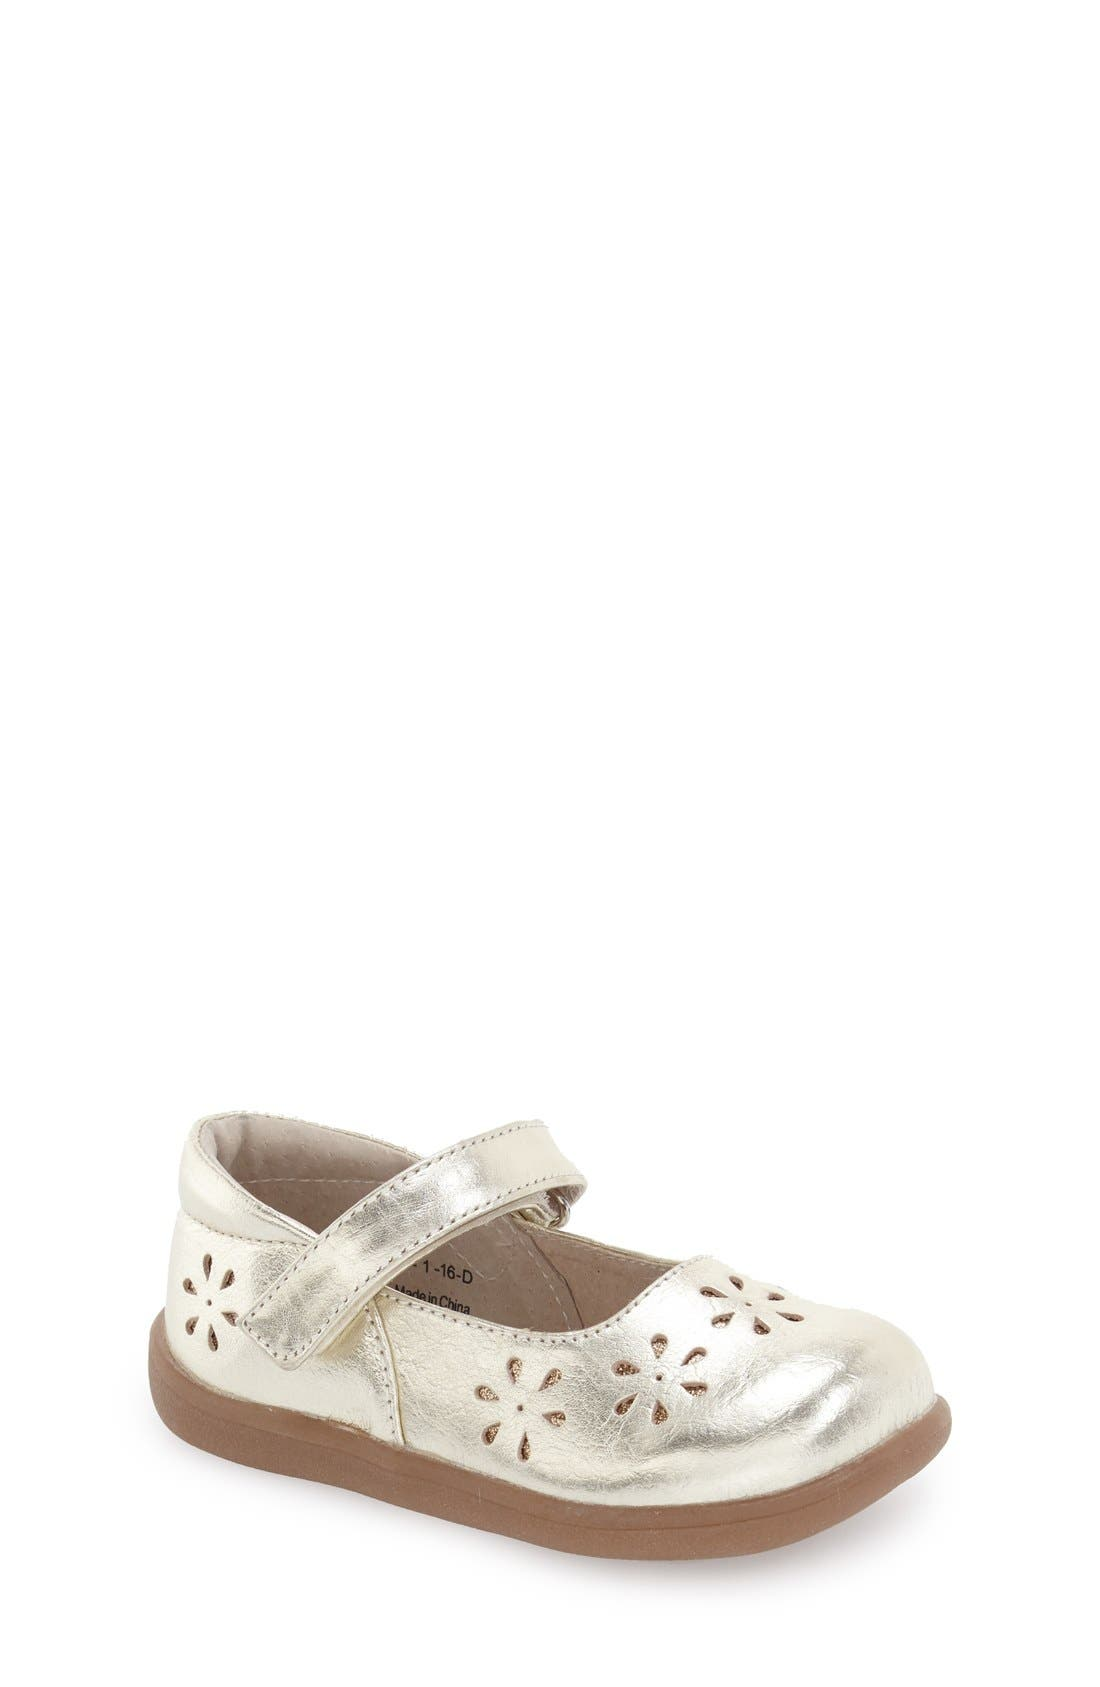 See Kai Run 'Ginger' Metallic Leather Mary Jane Flat (Toddler & Little Kid)